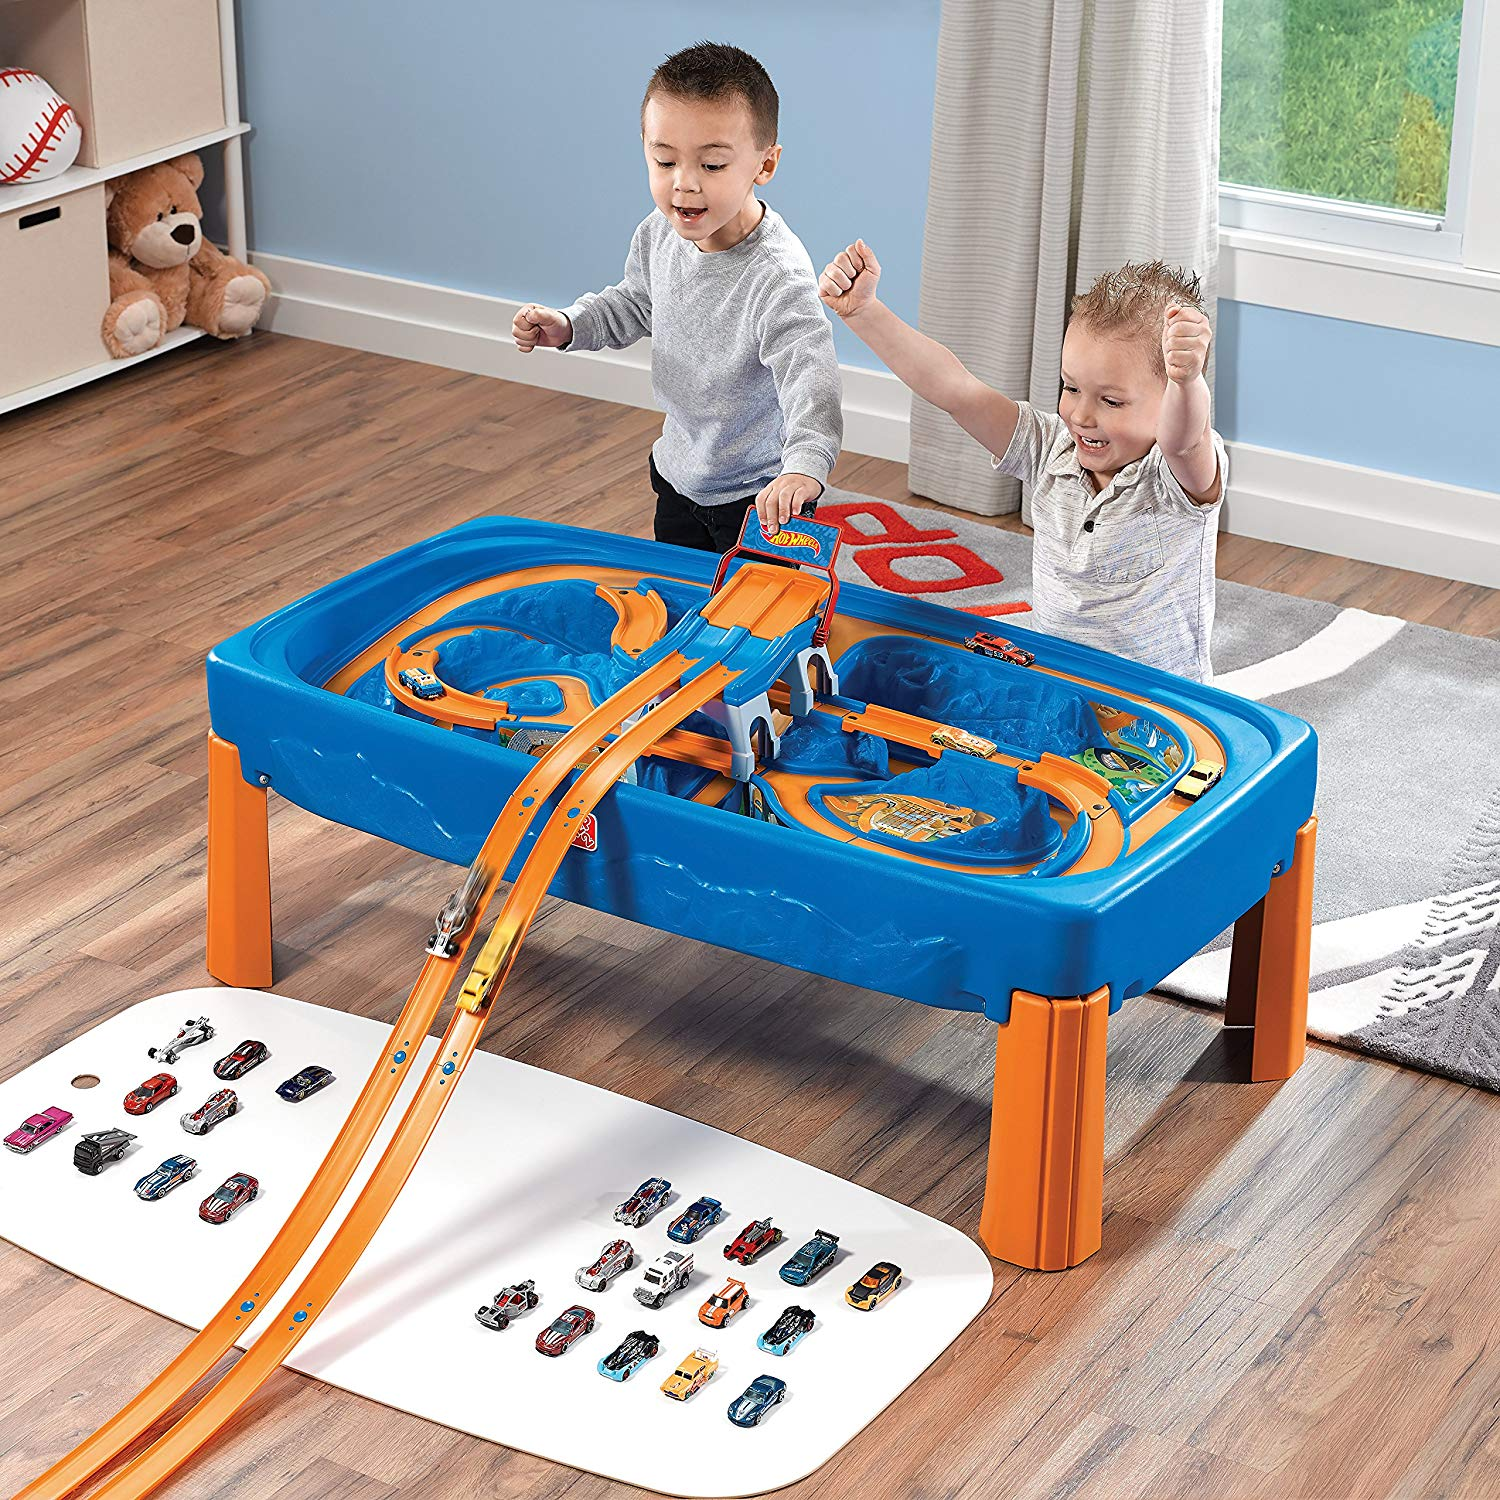 hot wheels table